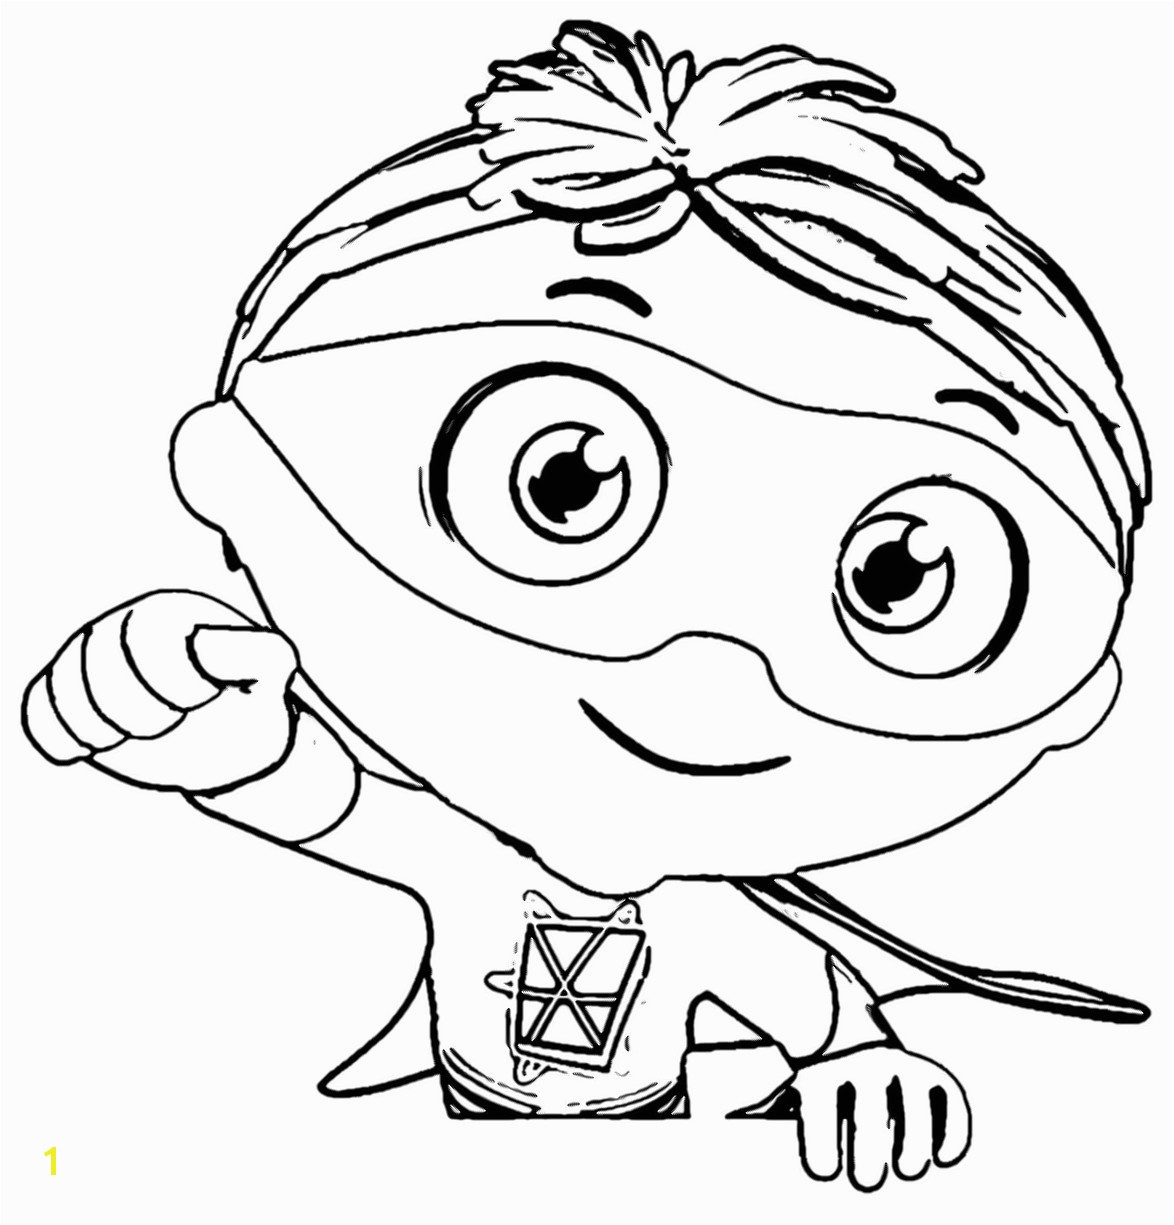 Super Why Coloring Pages Best For Kids Within P Free Page